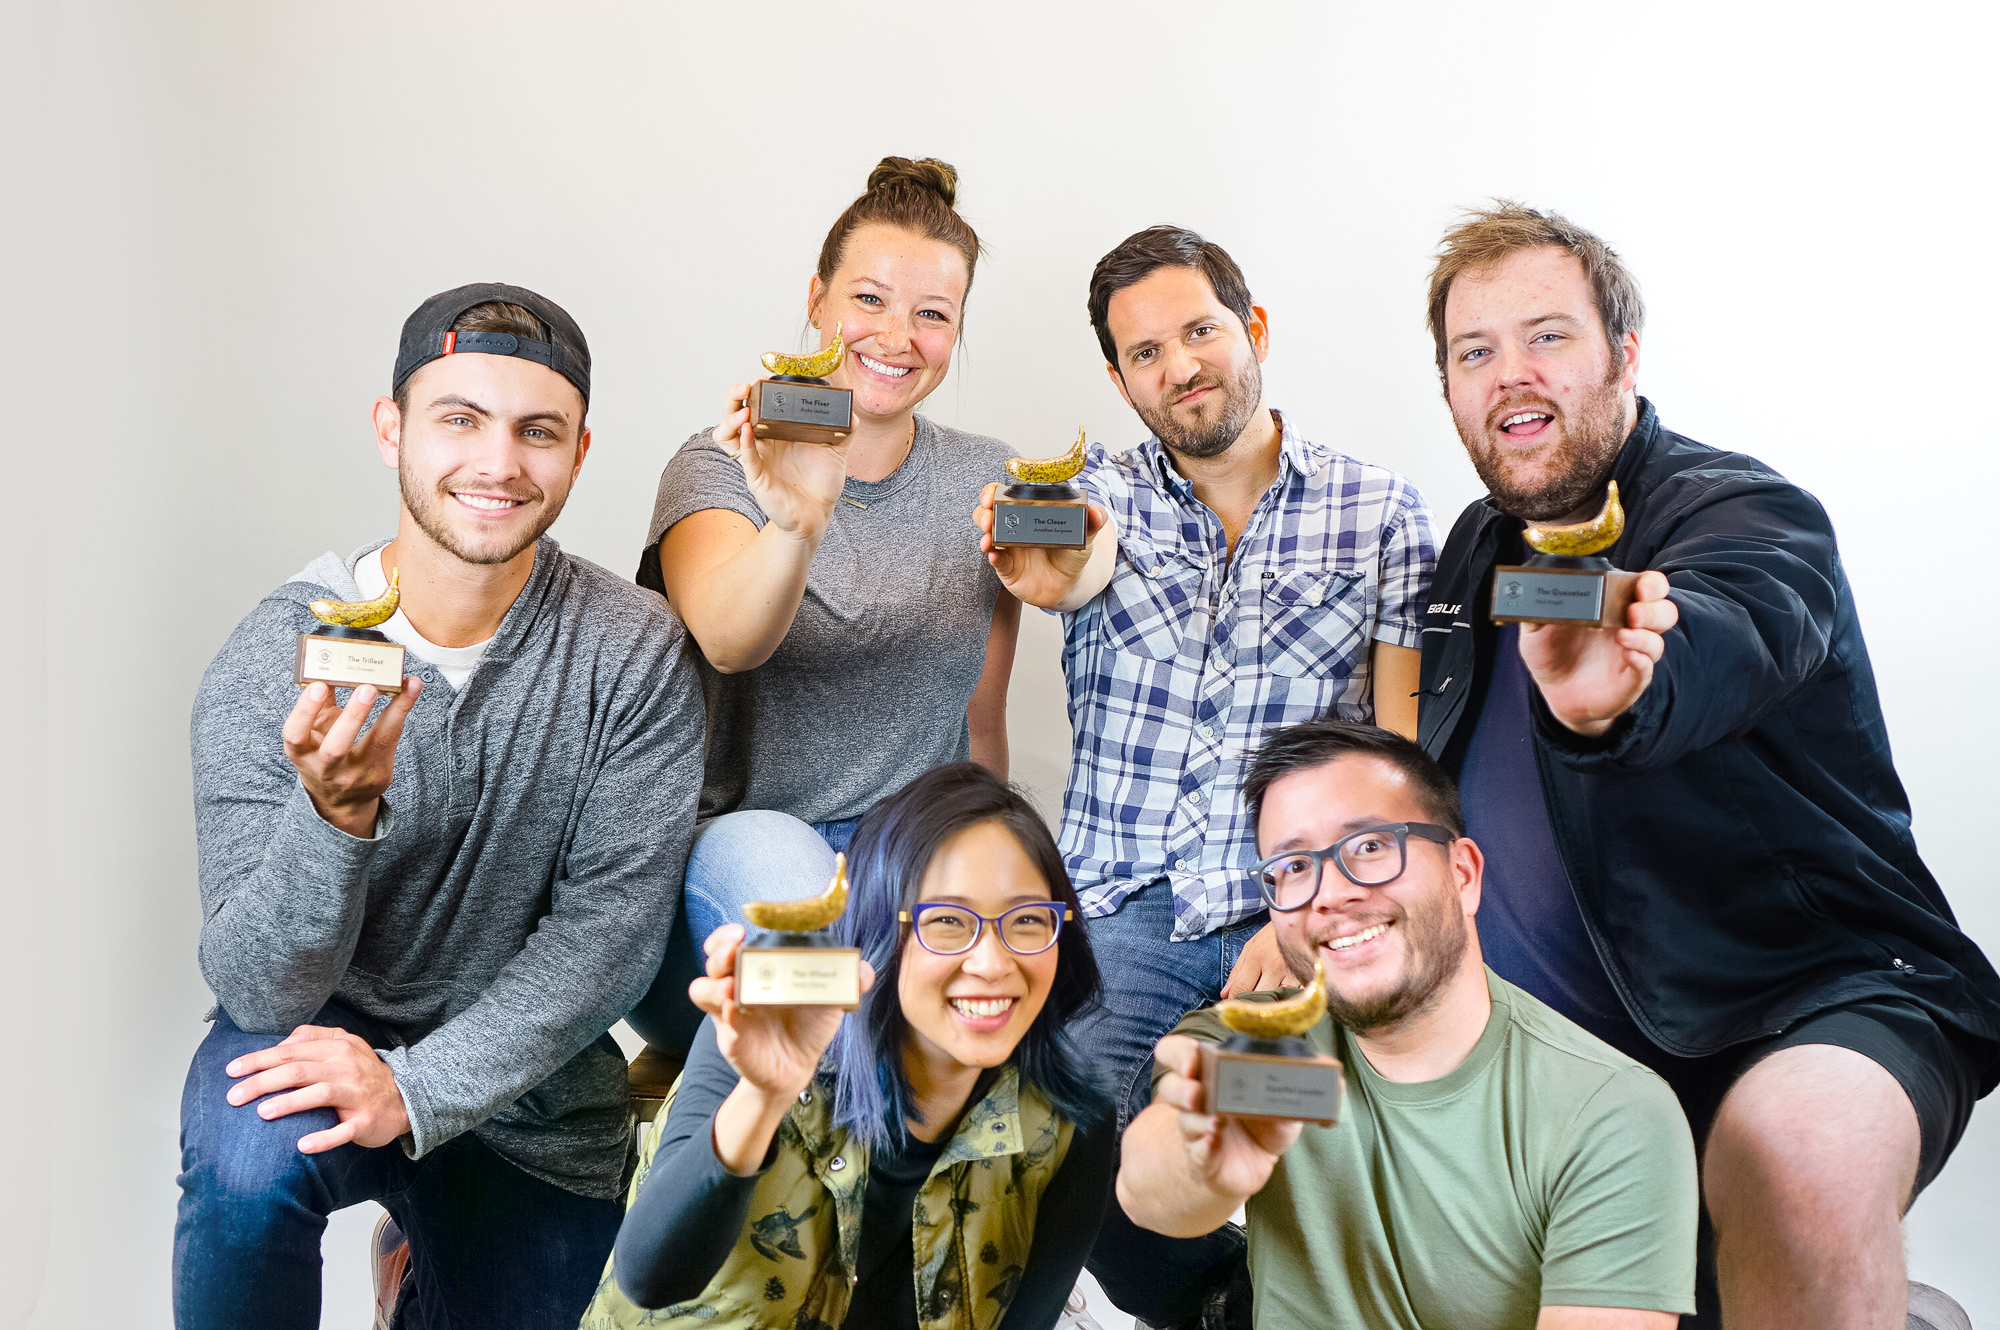 Tinkering Monkey team with sparkly banana shaped awards